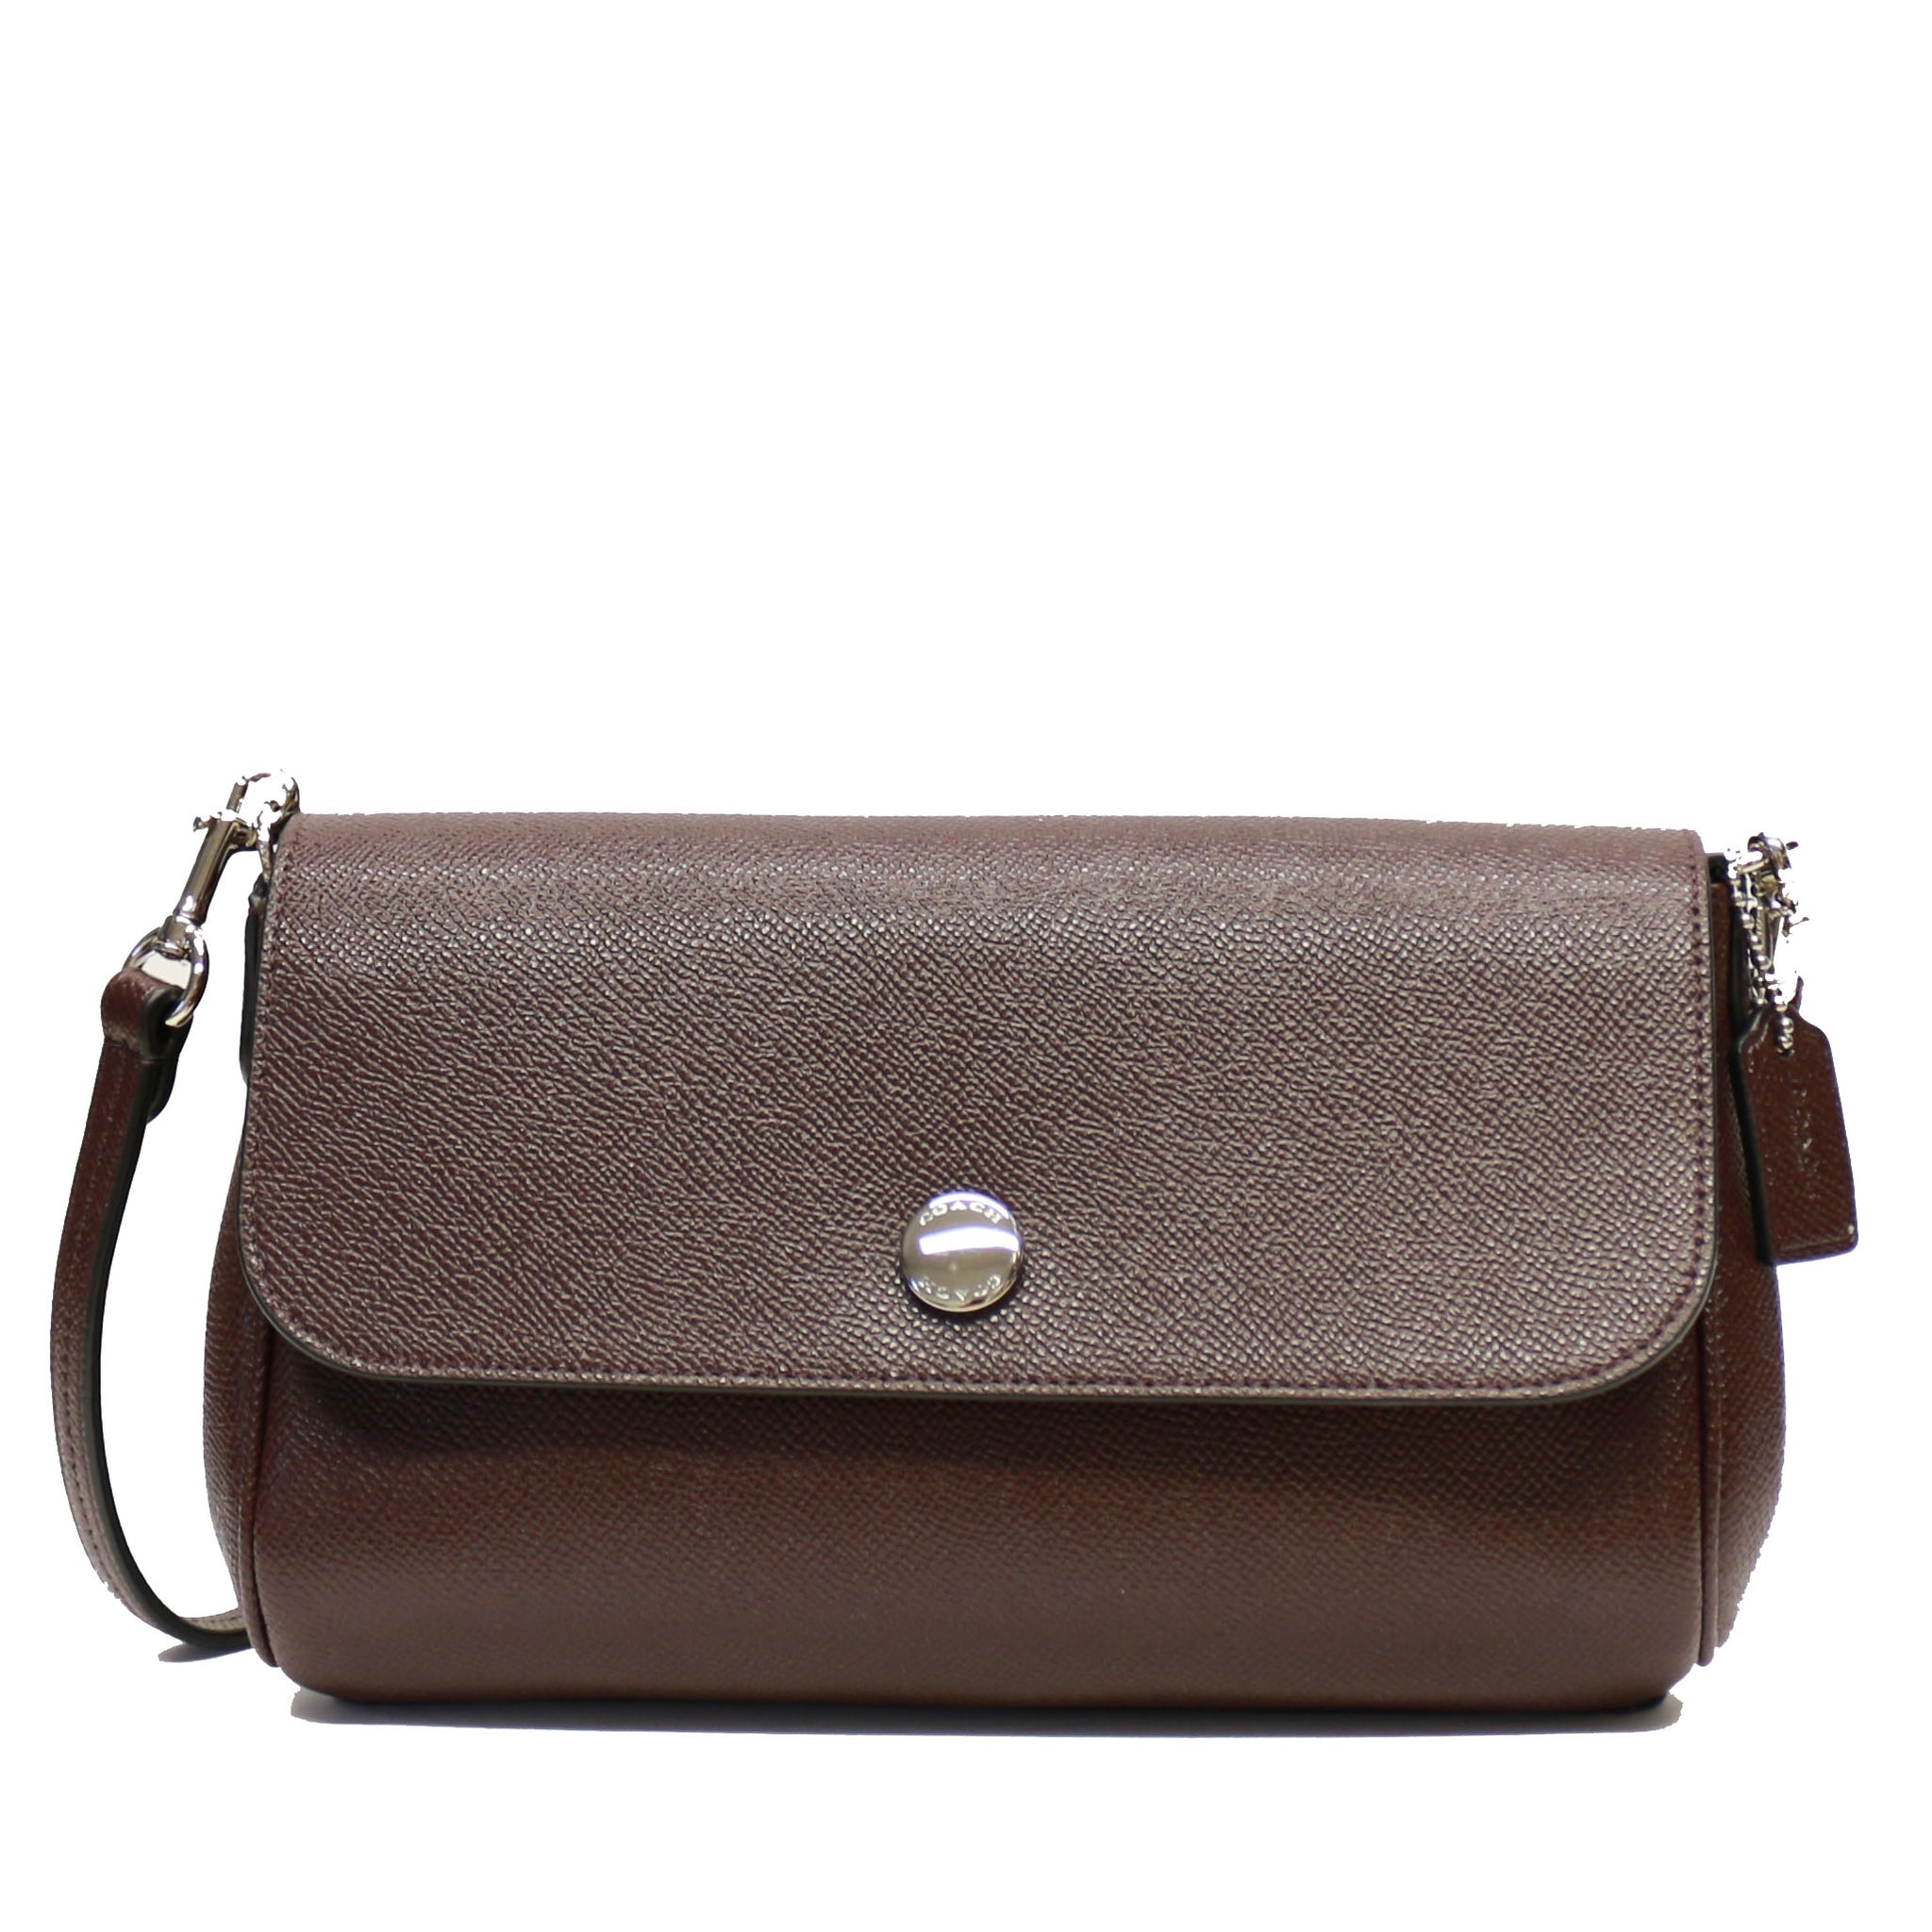 18a6ac4c809c7 ... promo code for coach f12106 crossgrain leather reversible ruby  crossbody bag oxblood nude pink d5d1c 627a0